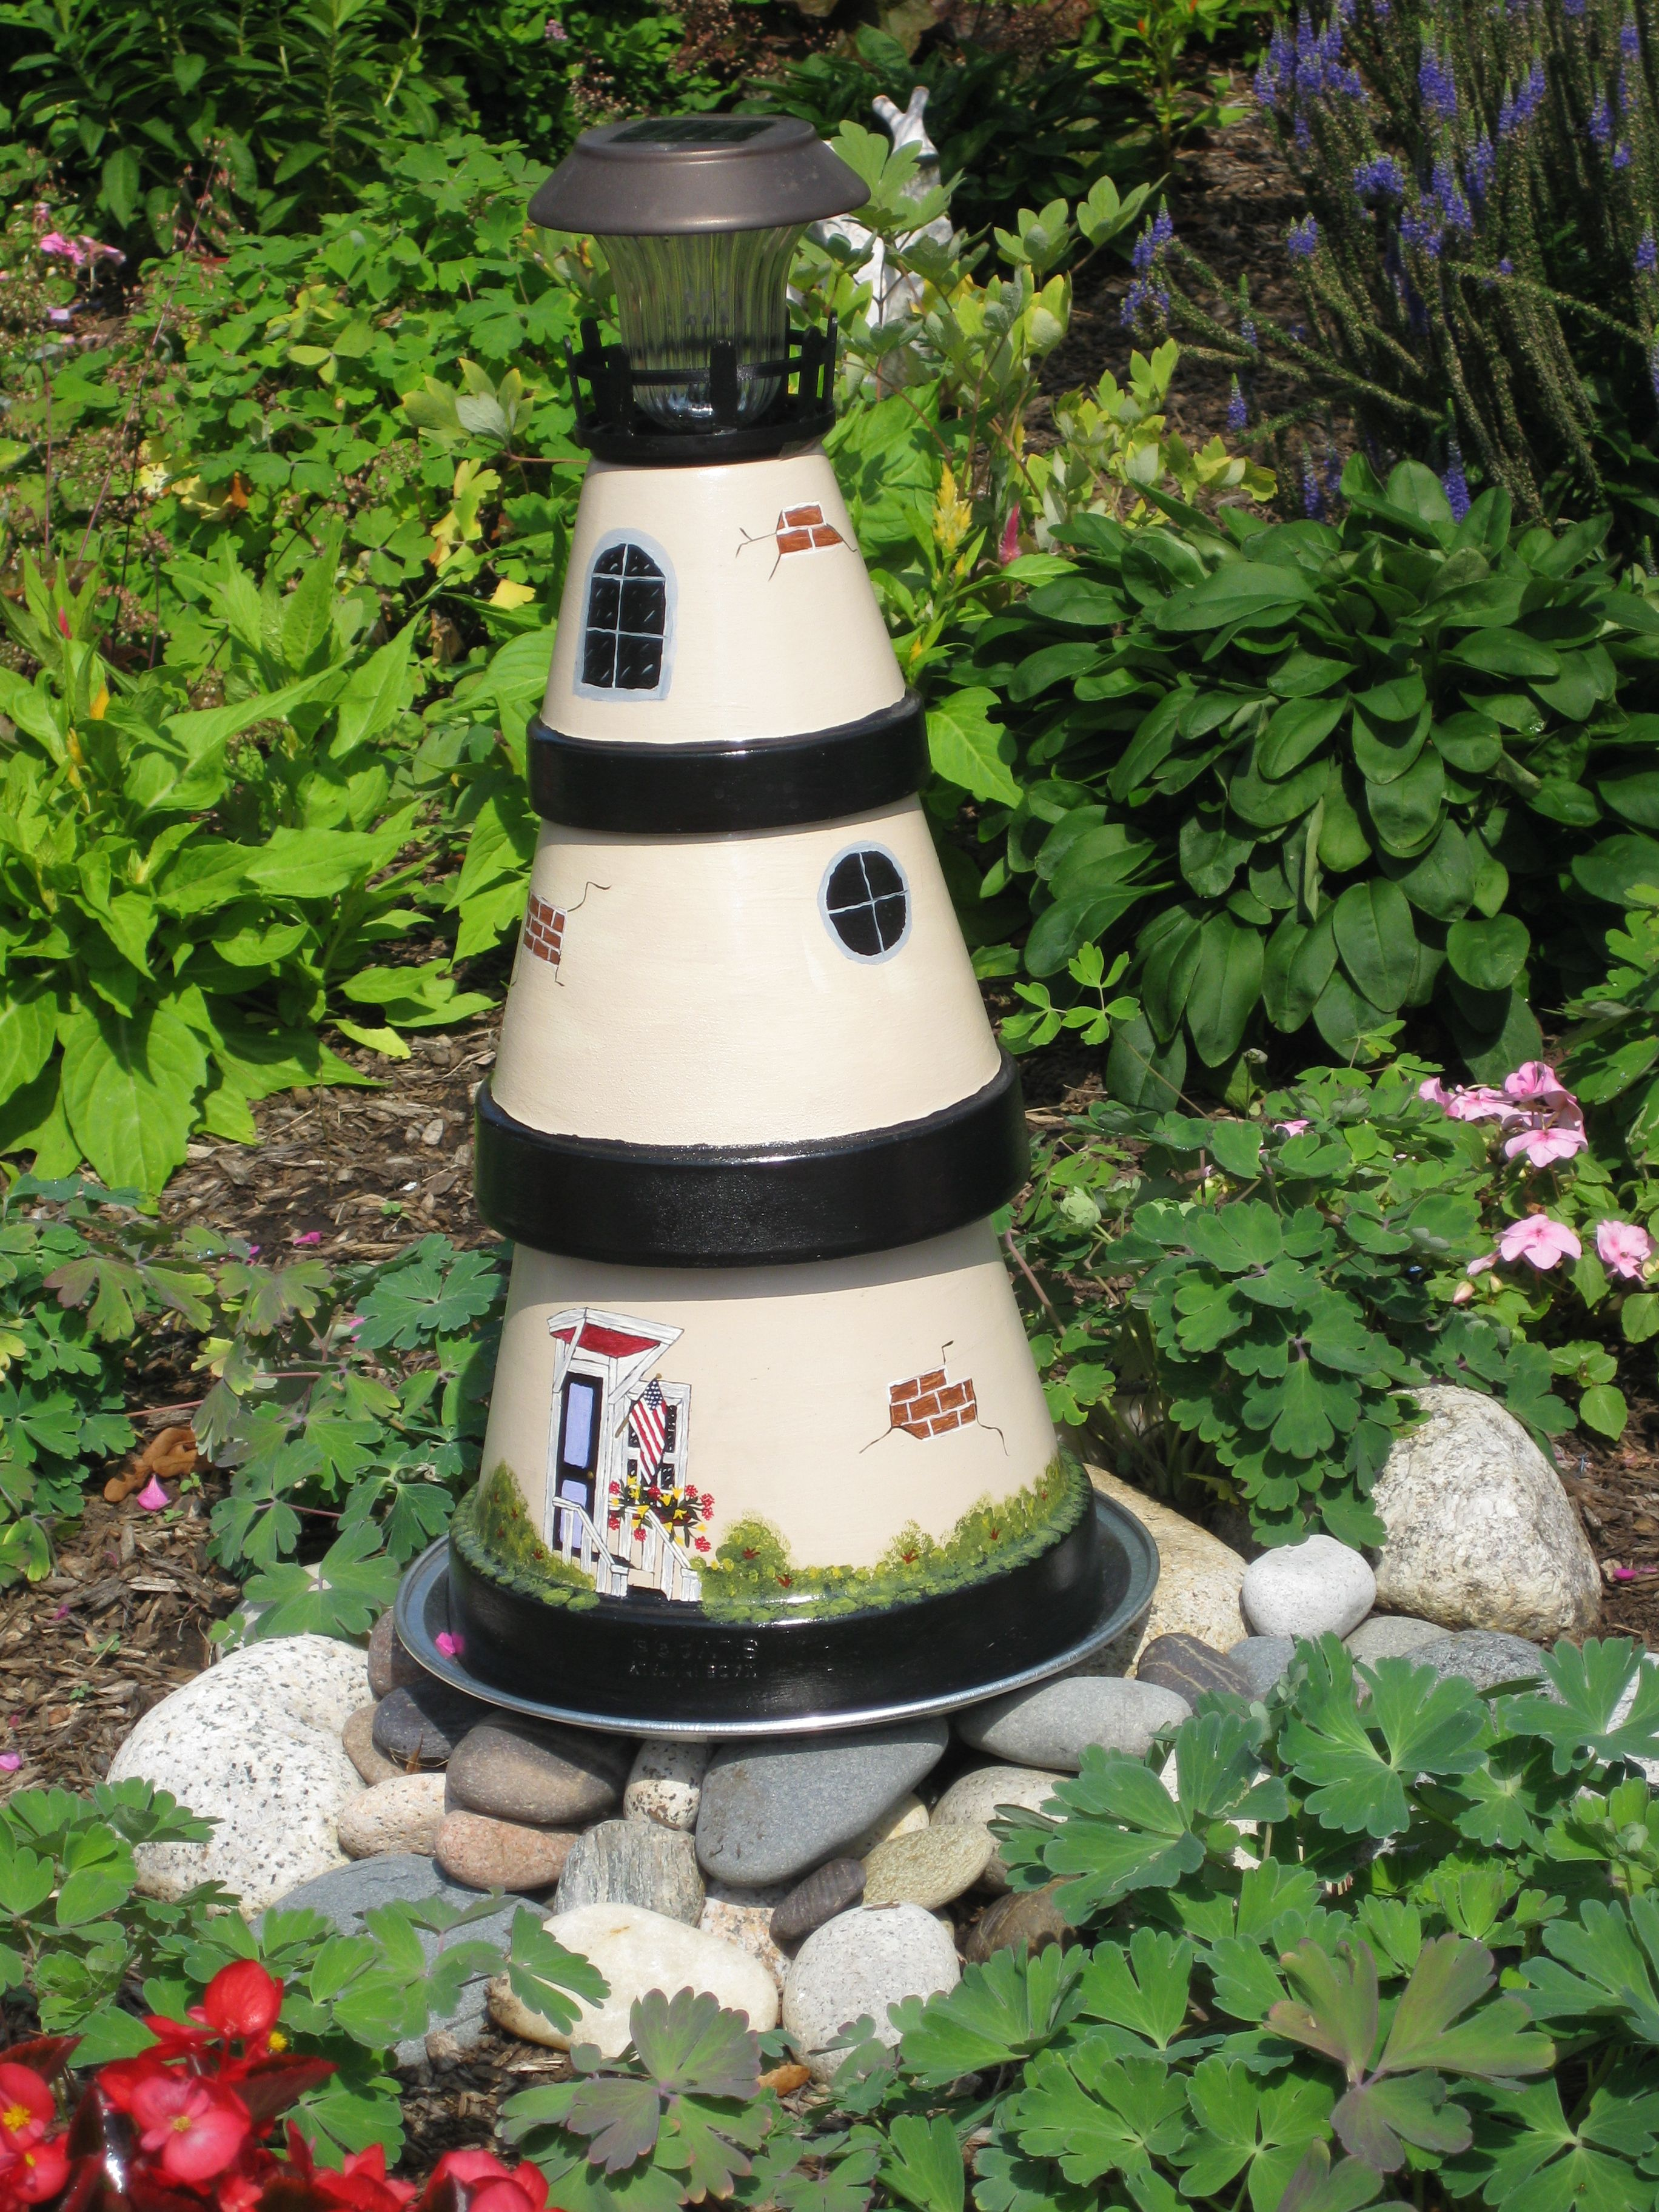 Diy make a clay pot lighthouse diy craft projects - Clay Pot Projects